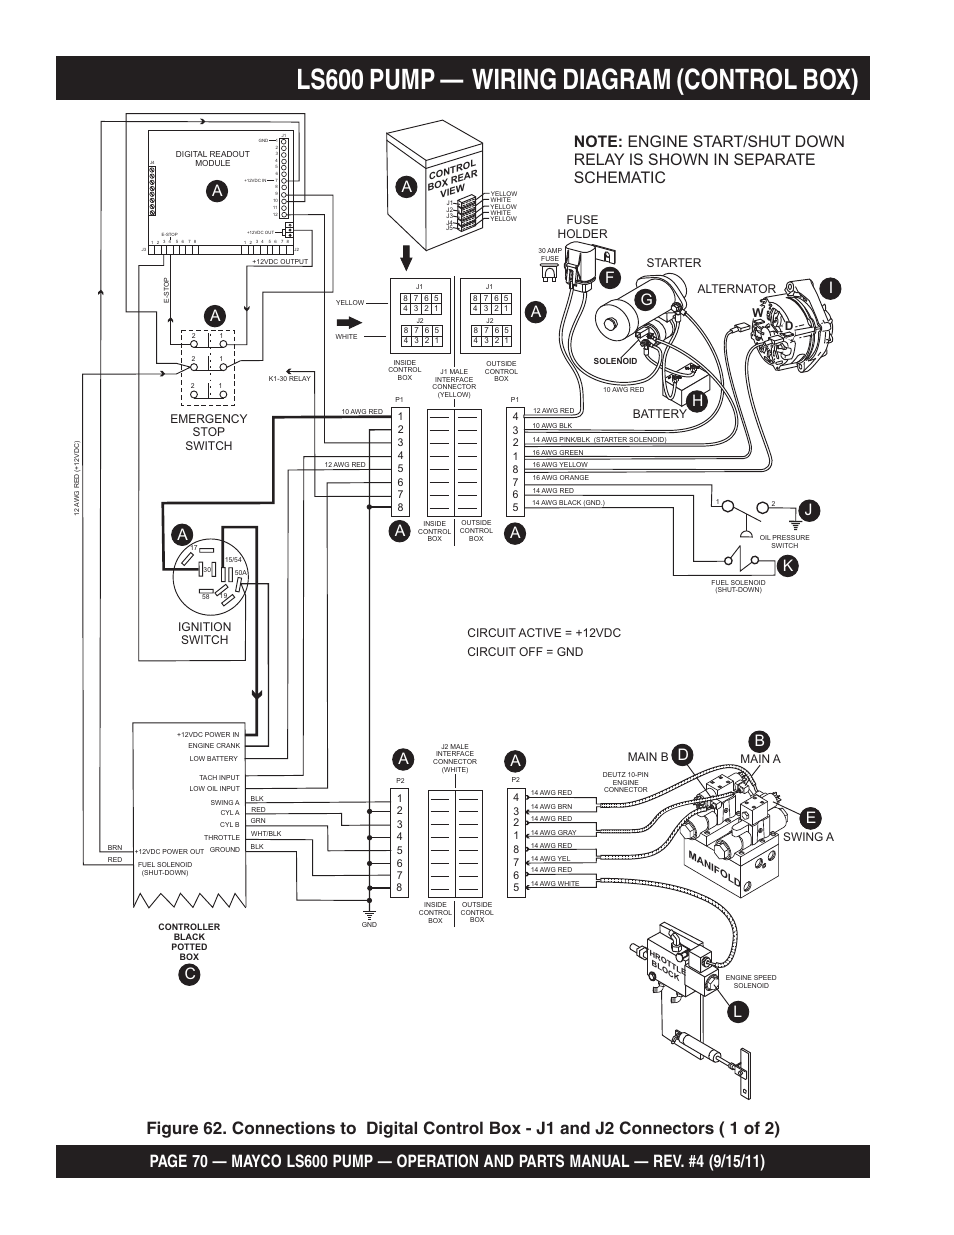 hight resolution of ls600 pump wiring diagram control box bd e e fuse holder multiquip mayco concrete pump ls600 user manual page 70 152